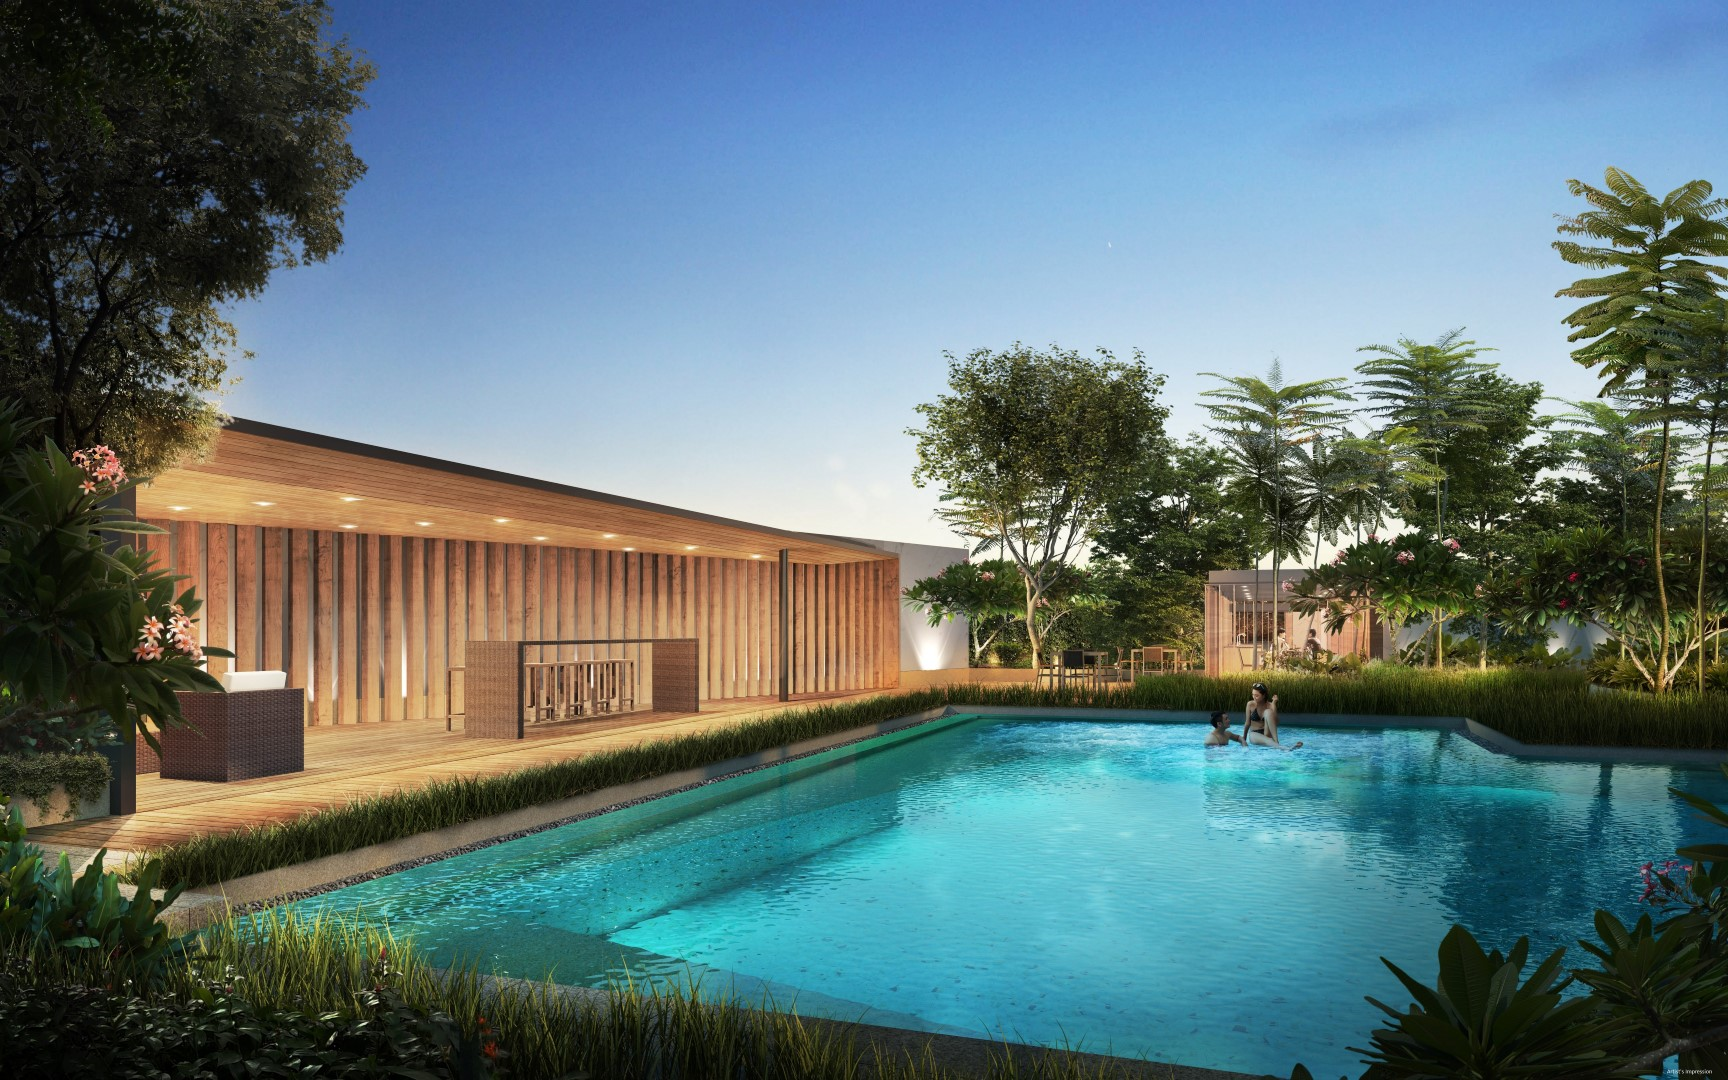 Artist's impression of the azure blue swimming pool at Le Quest.